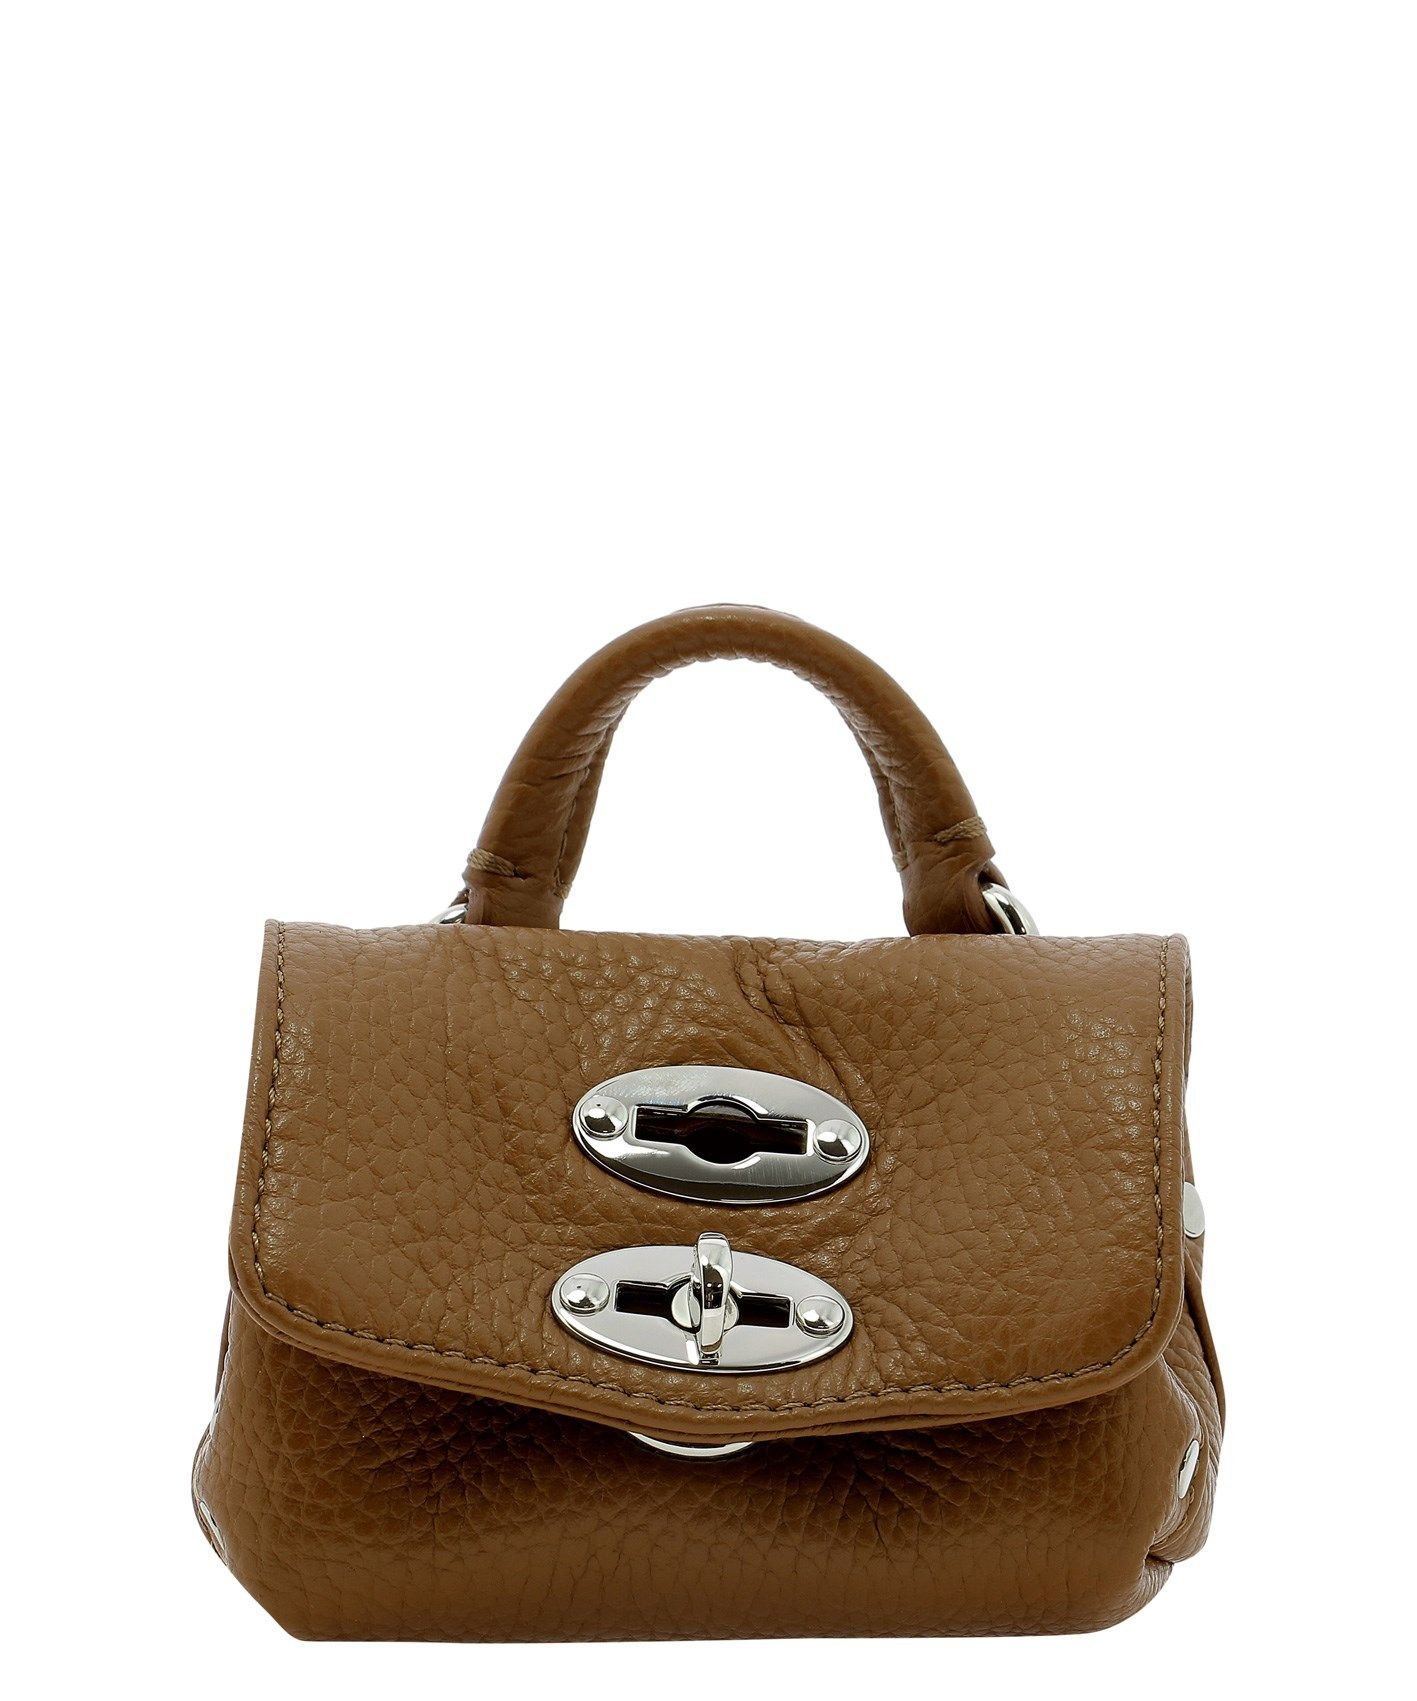 Zanellato ZANELLATO WOMEN'S 66831822 BROWN OTHER MATERIALS HANDBAG